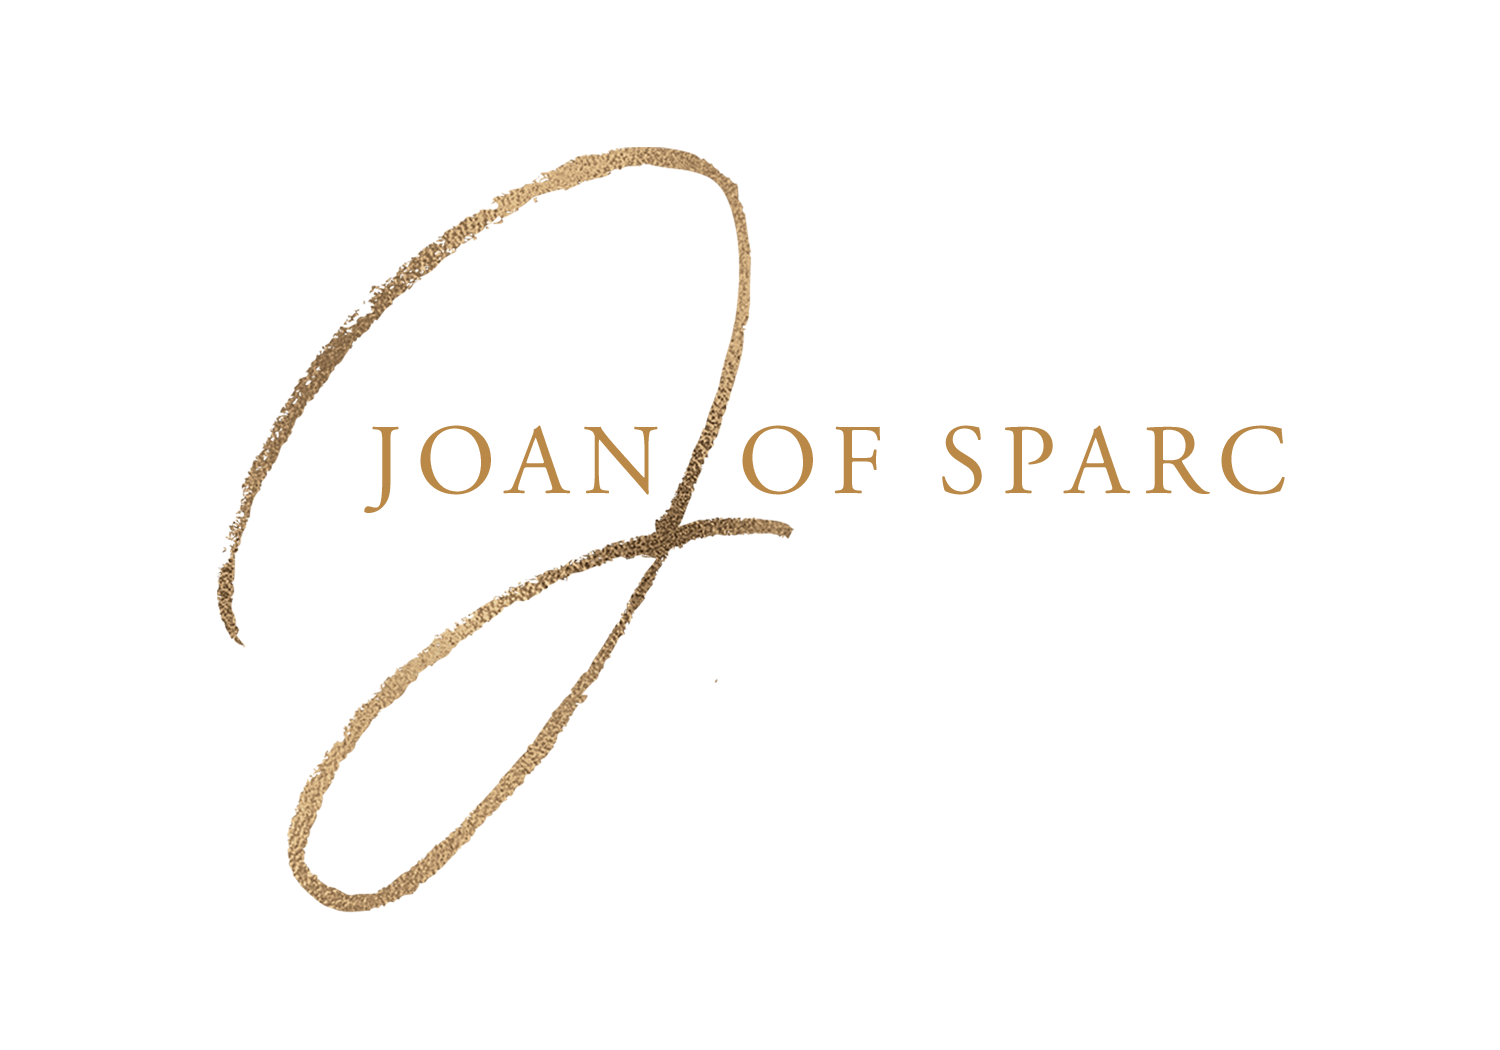 Joan of Sparc